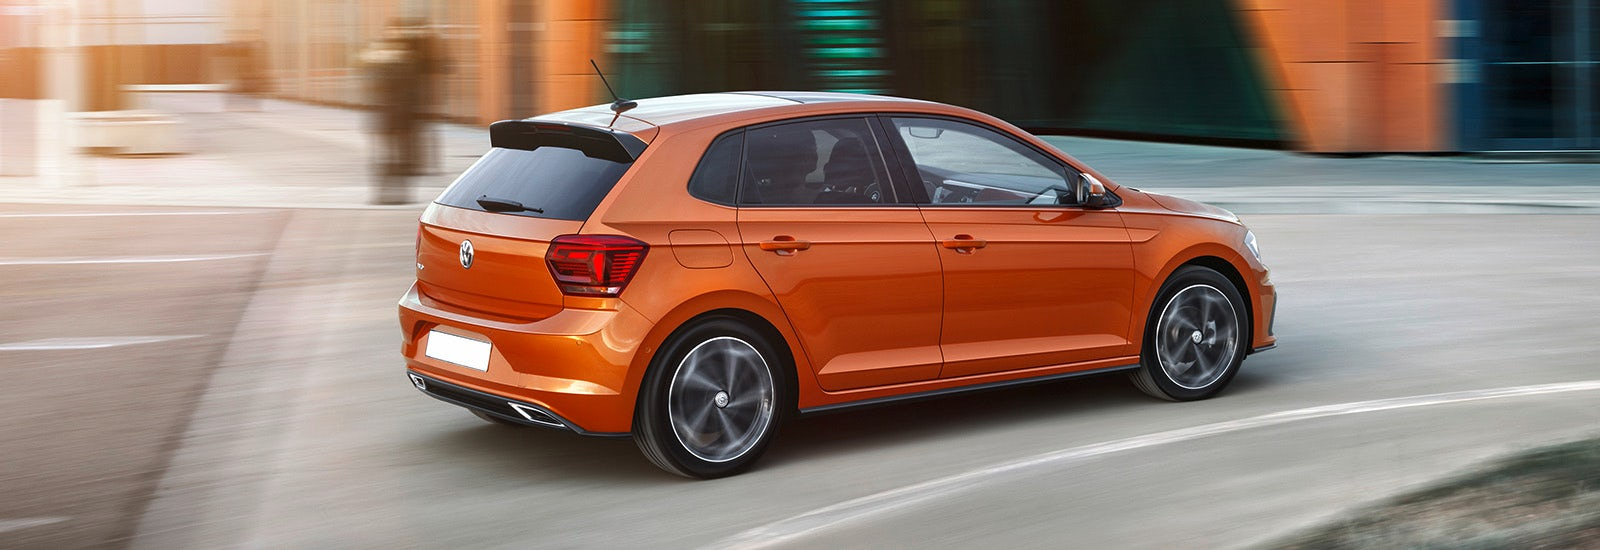 Volkswagen polo vivo facelift revealed - There S A Multitude Of Available Safety Systems Such As Standard Automatic Emergency Braking Adaptive Cruise Control That Can Match The Speed Of The Car In